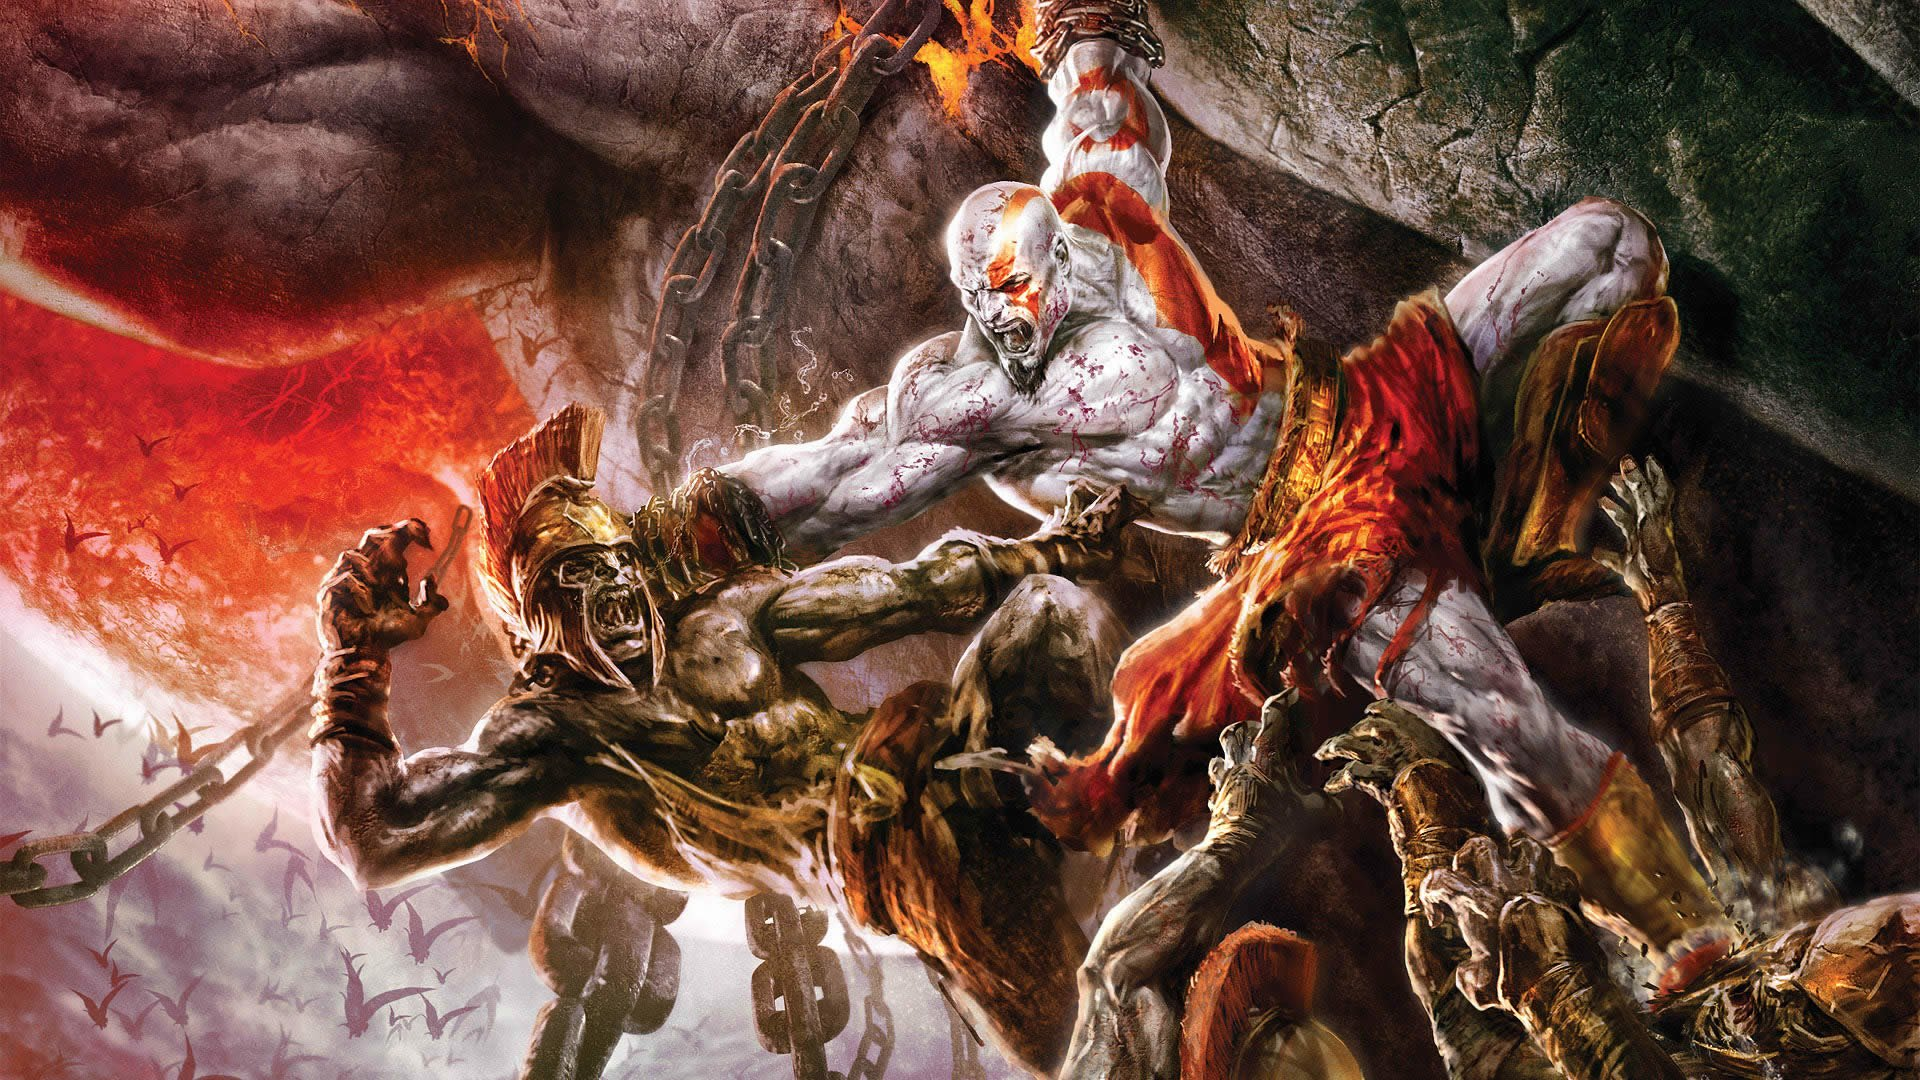 God Of War Iii Hd Wallpaper Hintergrund 1920x1080 Id 82741